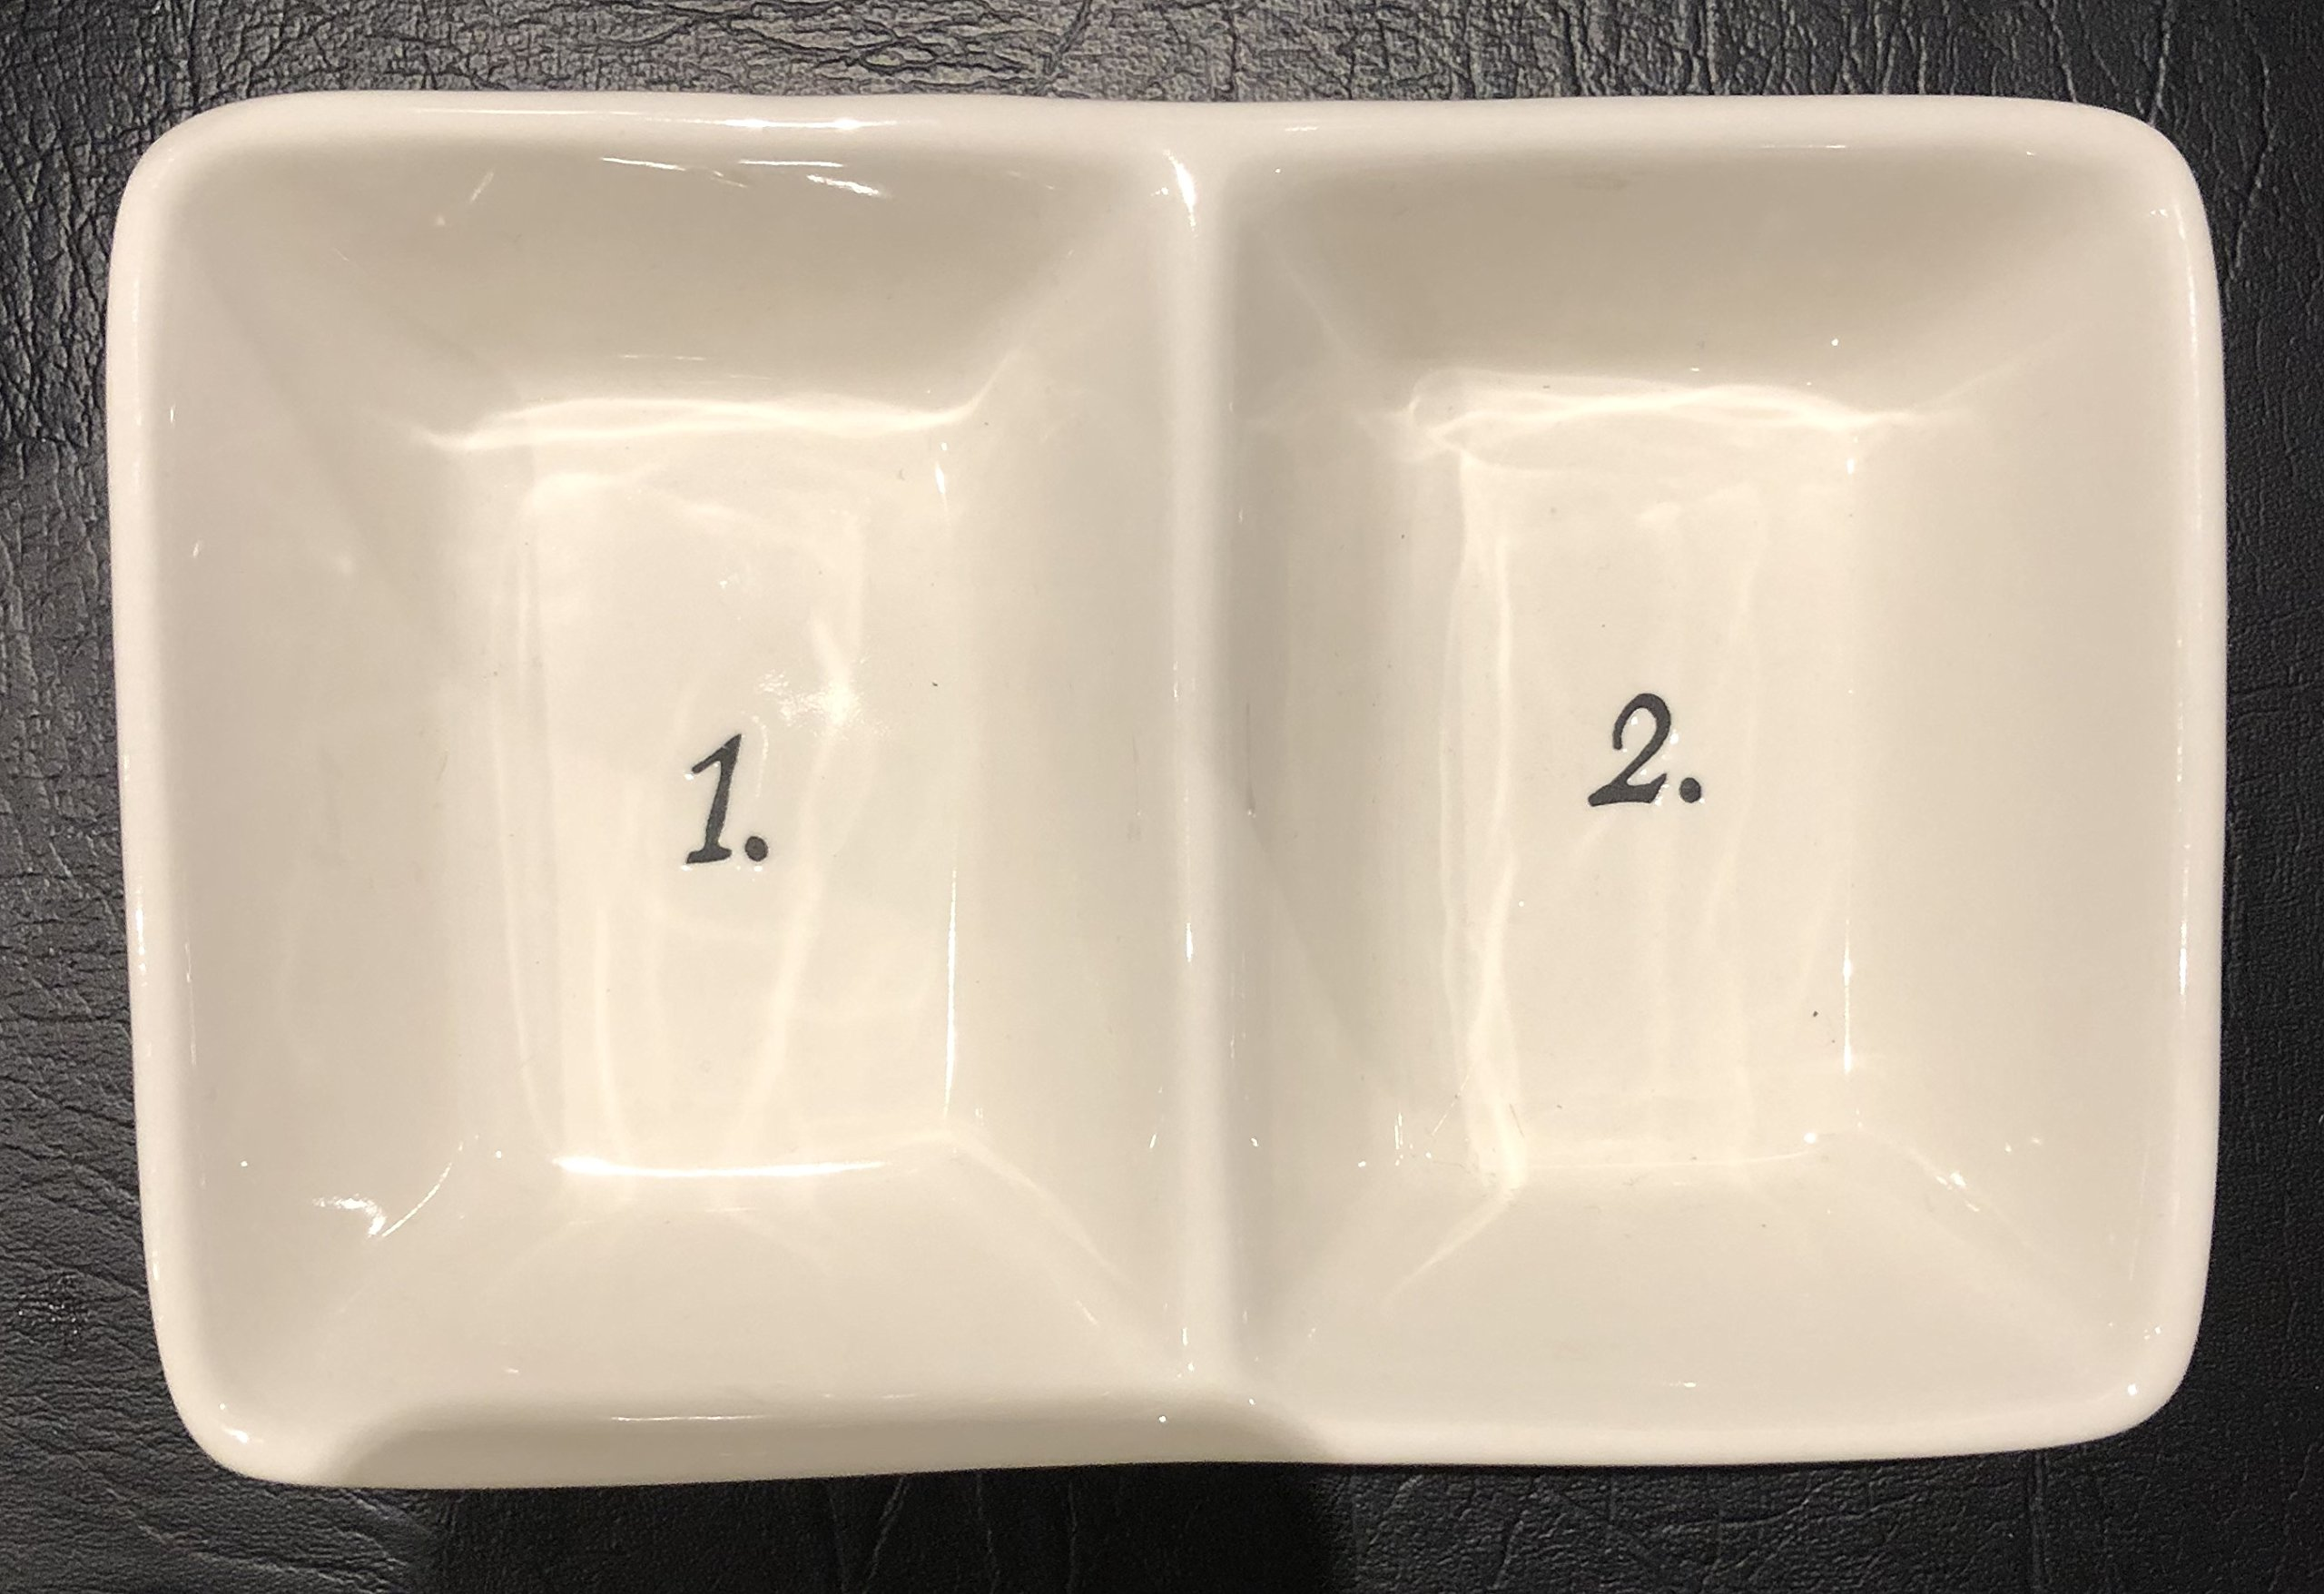 Rae Dunn Artisan Collection 2-Section Divided Tray /Serving Dish Dishwasher Safe [7.5'' X 5'' X 2'' Deep] Schoolhouse Numbers 1 & 2